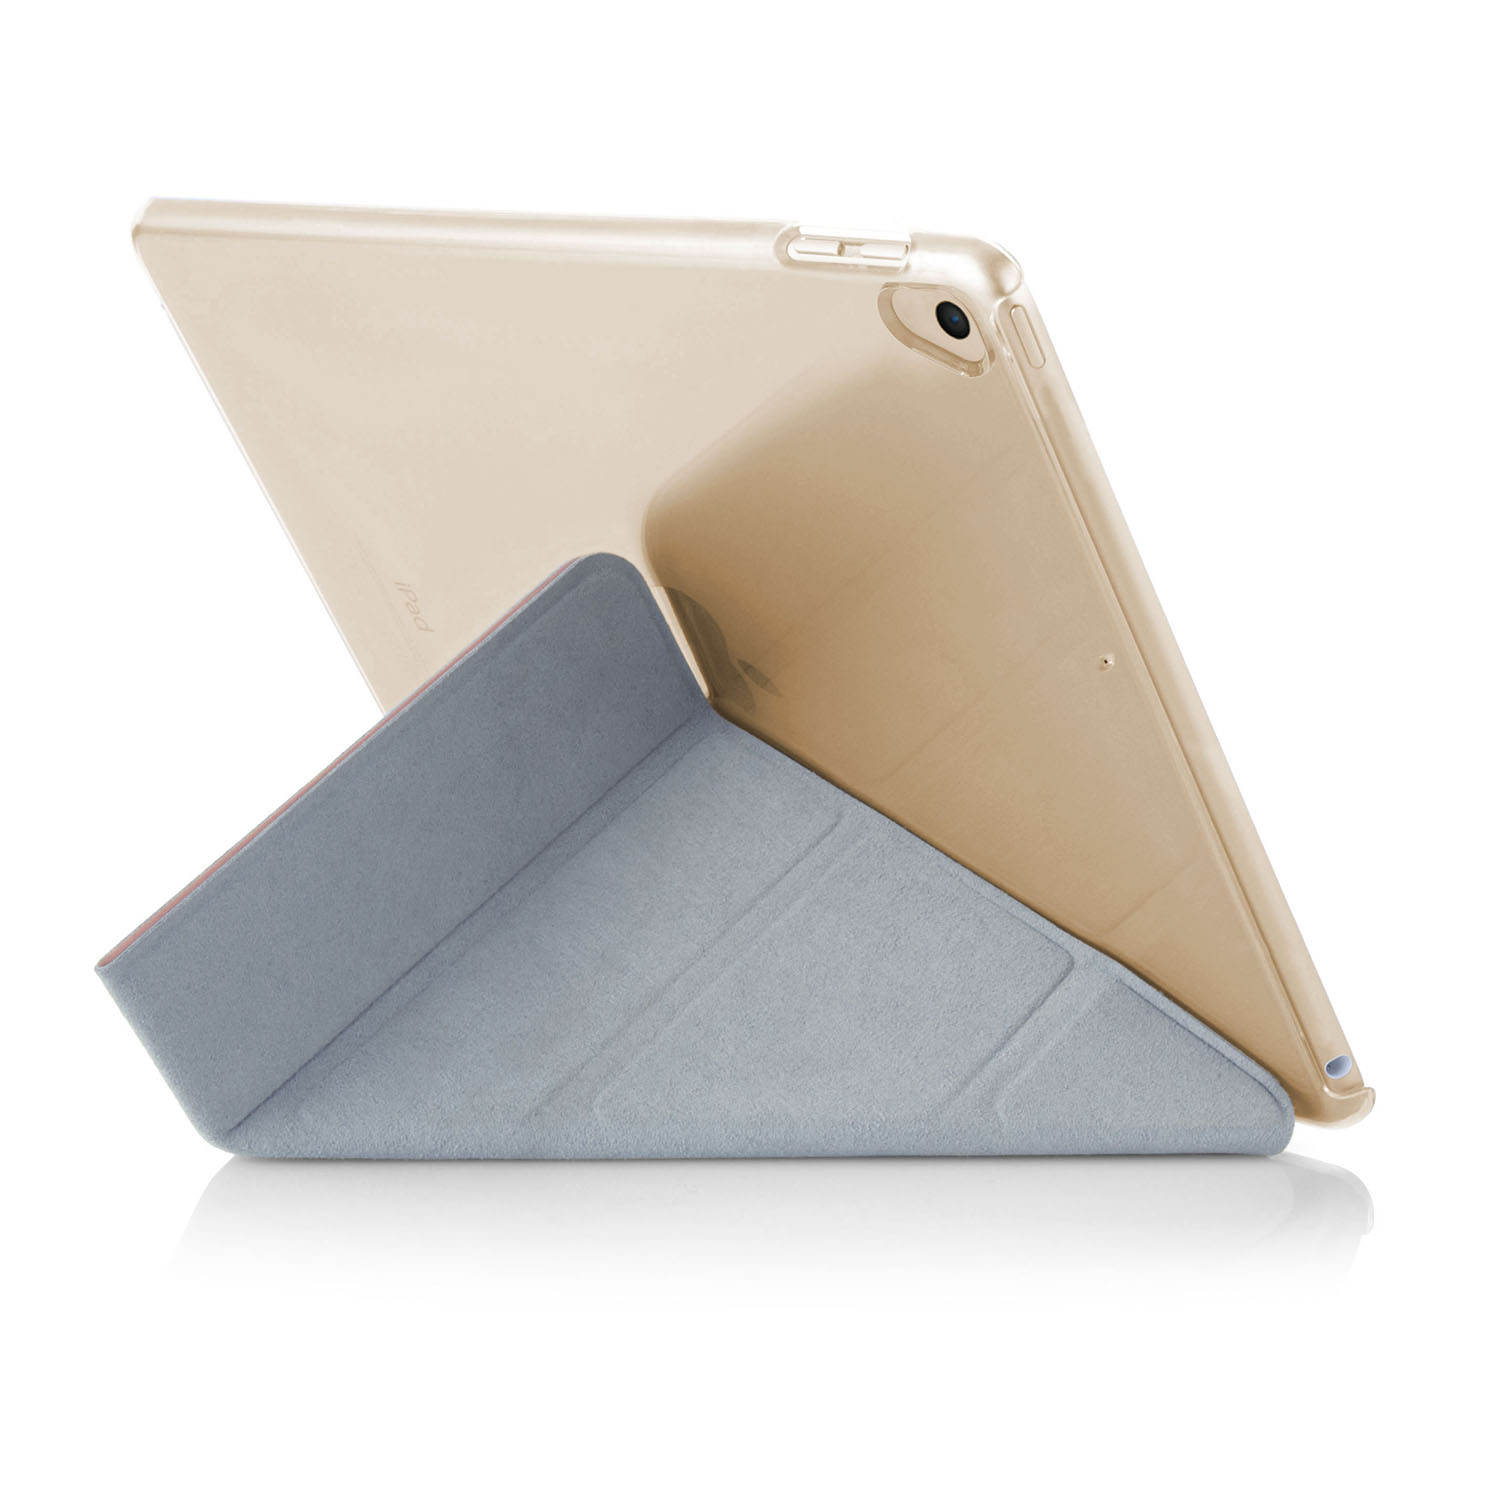 16abc8249cc8 Pipetto iPad 9.7 (2017) Case Dusty Pink Origami Luxe